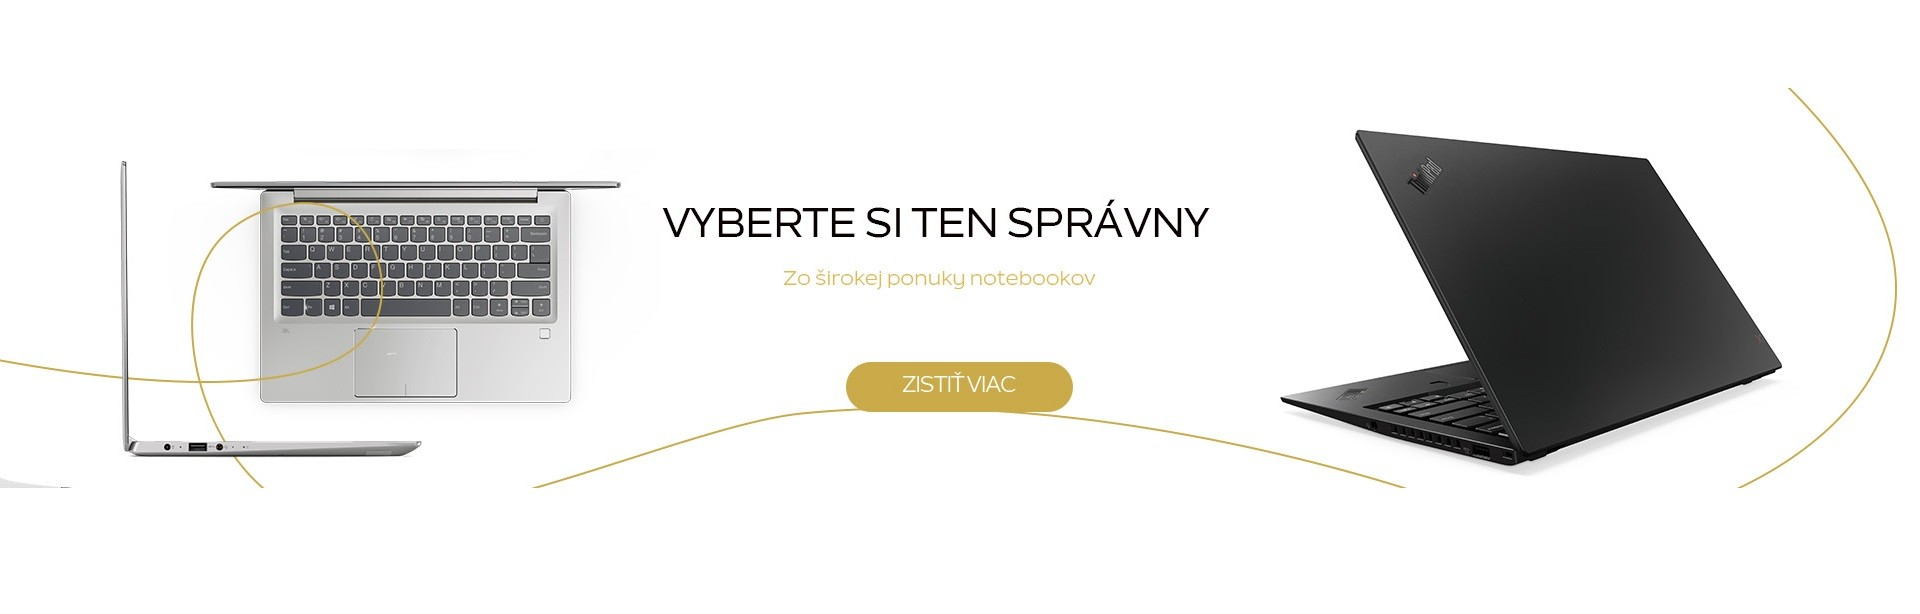 Spravny_notebook